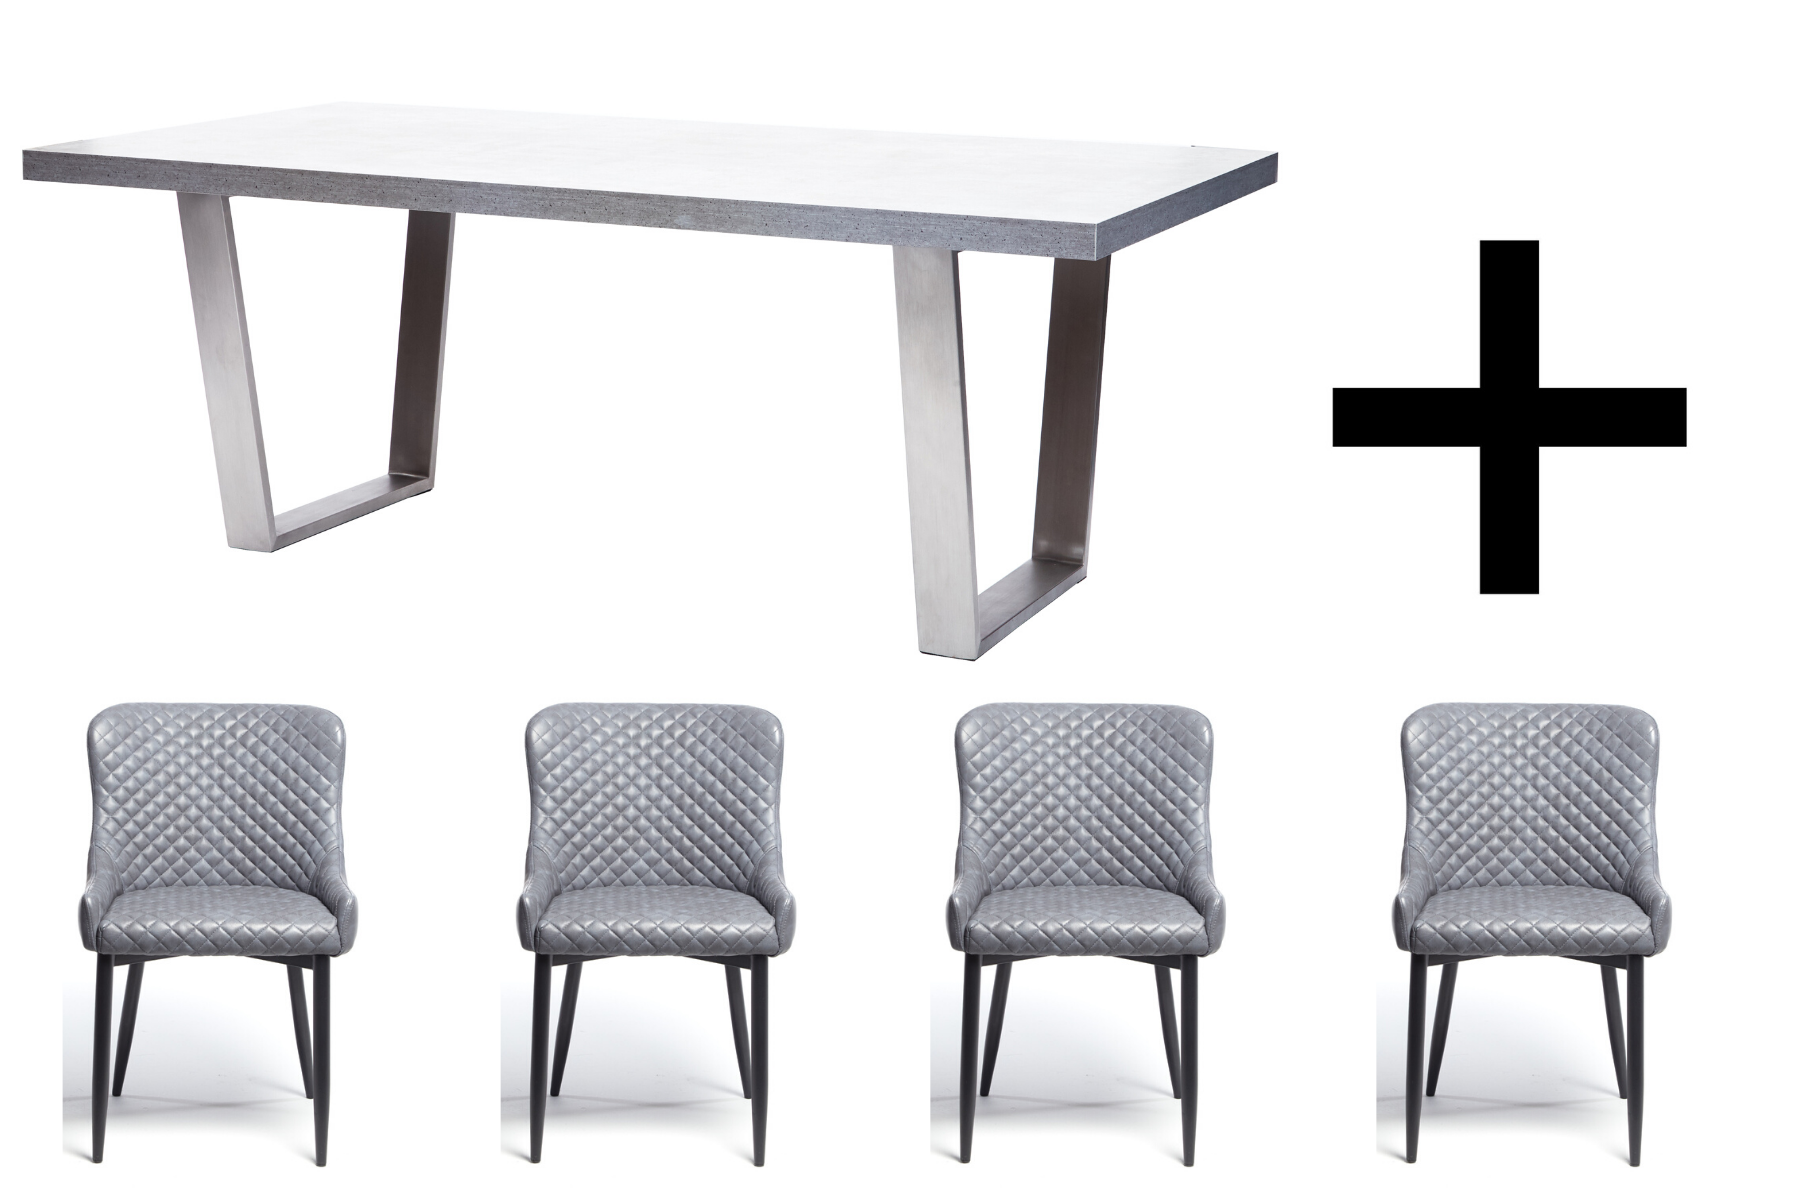 Hornby 200cm Dining Table and 4 Vintage Grey Maxwell Dining Chairs - Bundle Deal